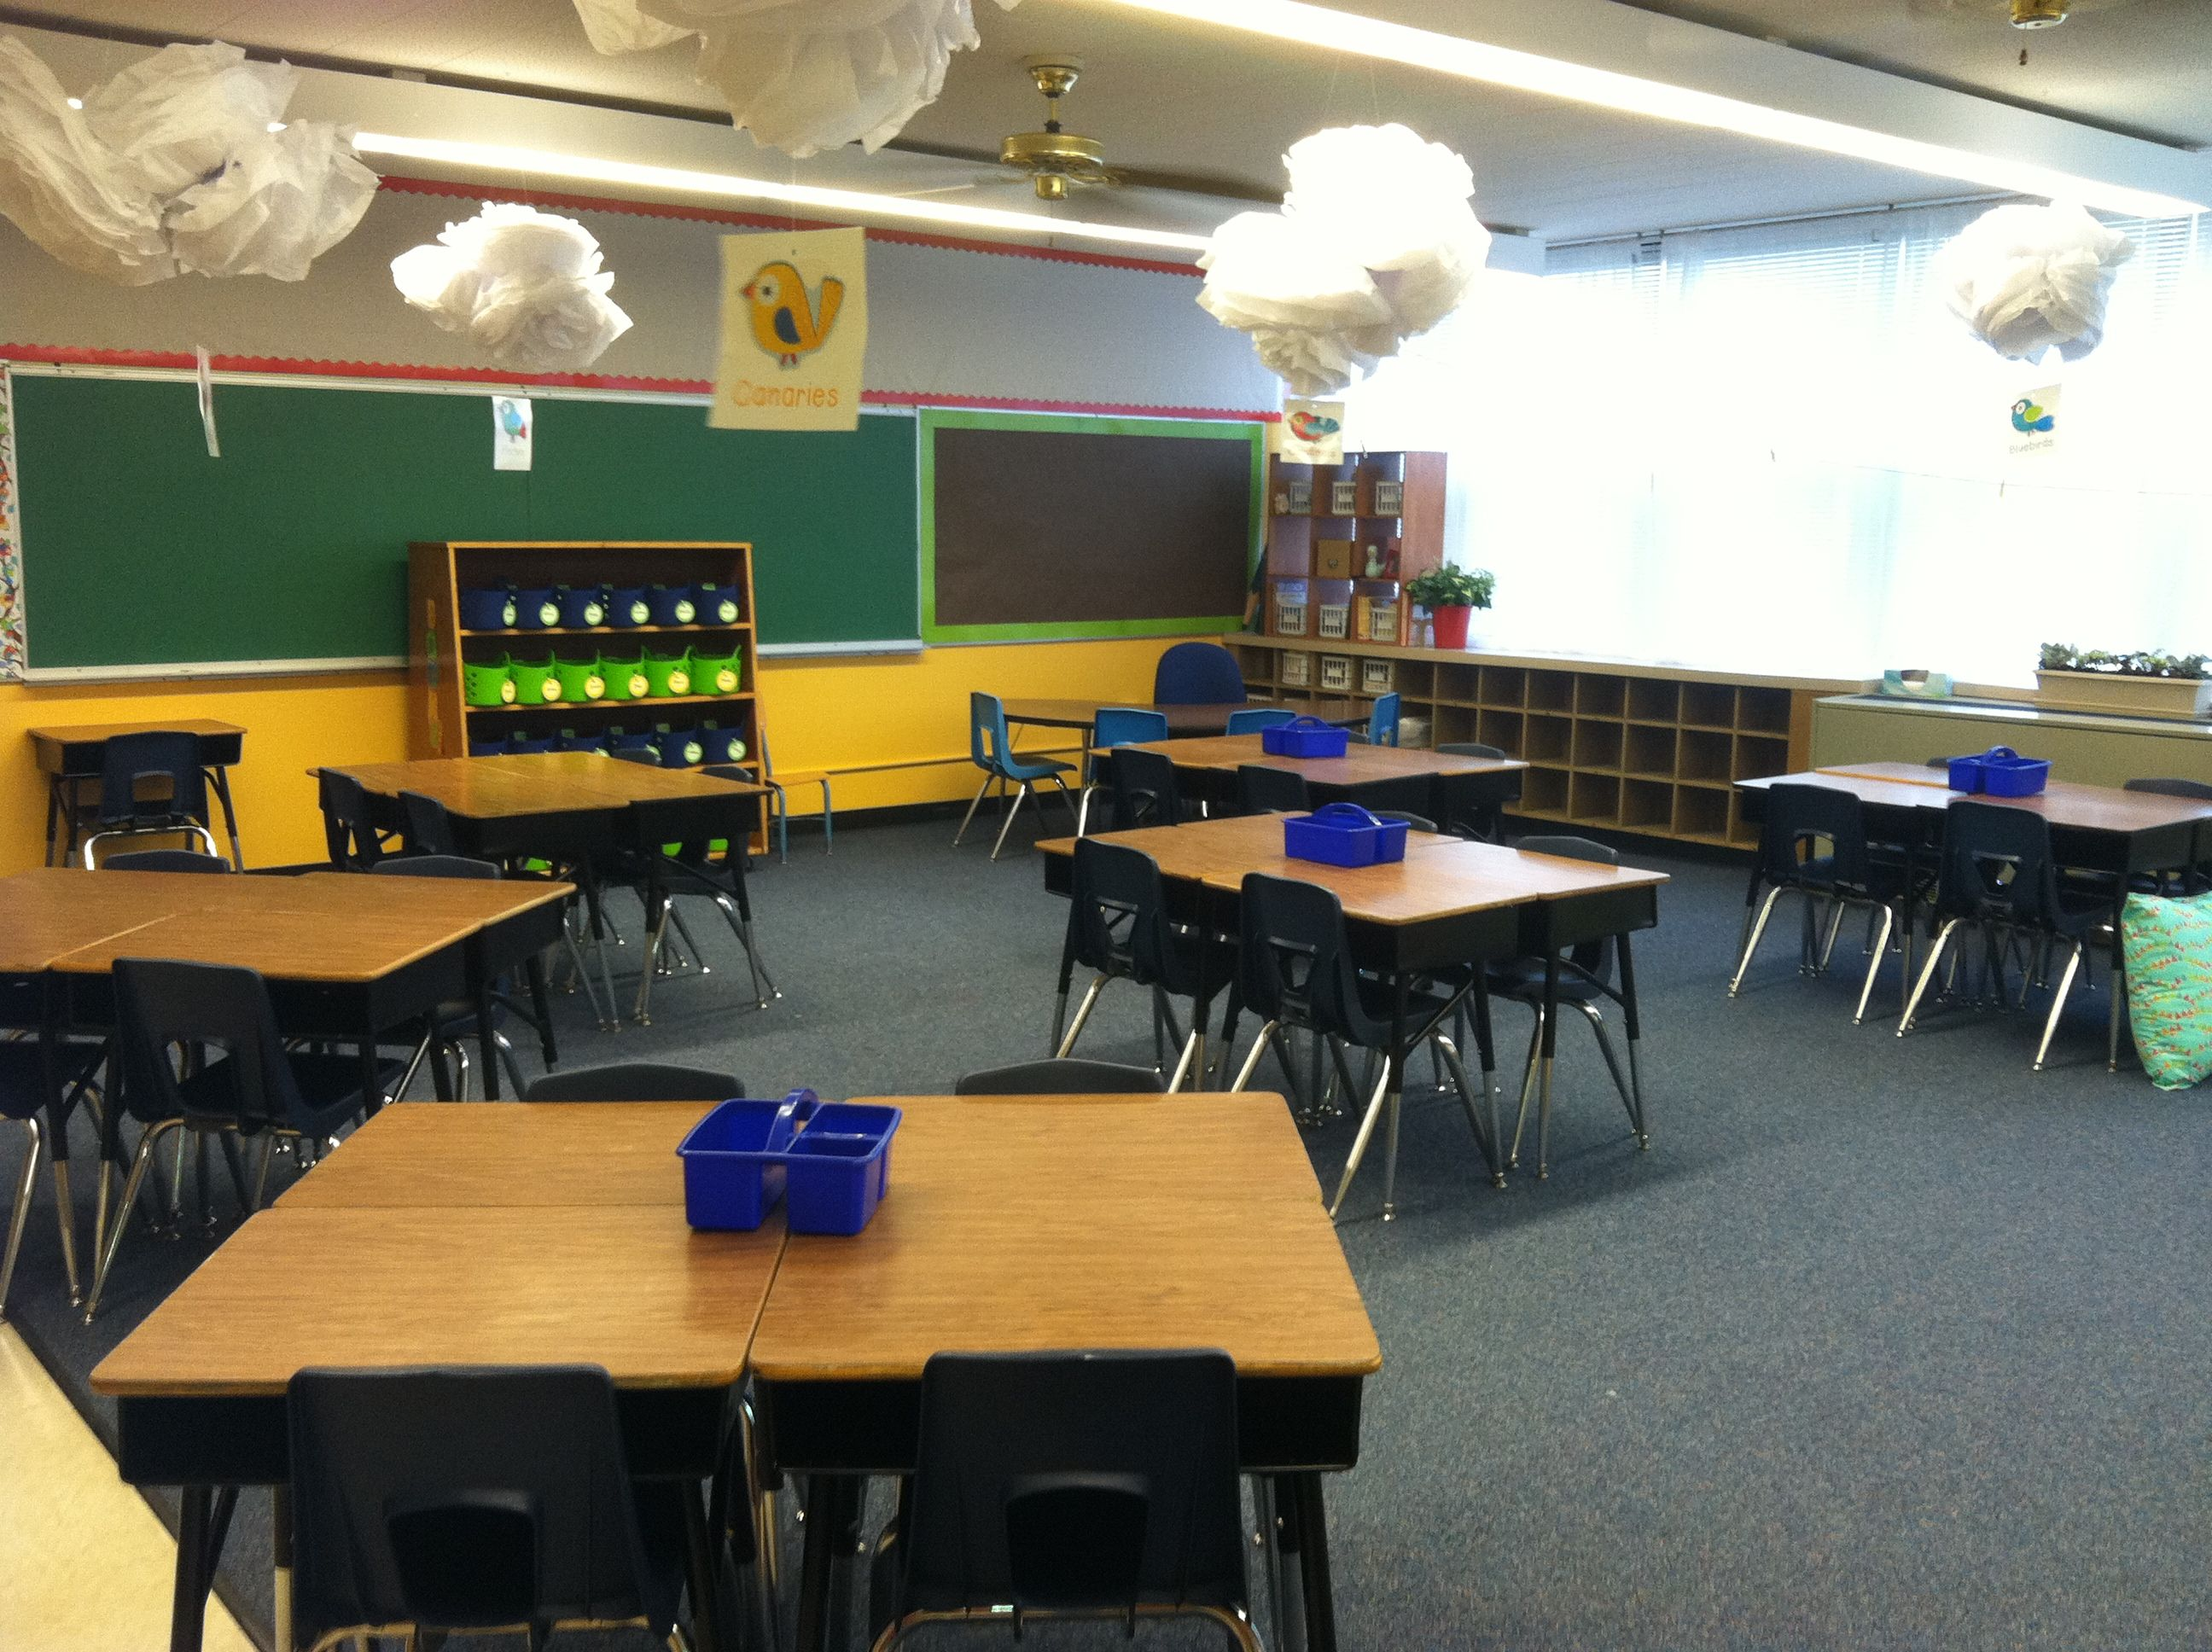 Classroom Design Cooperative Clusters ~ Clusters and clouds i love that my husband refers to the